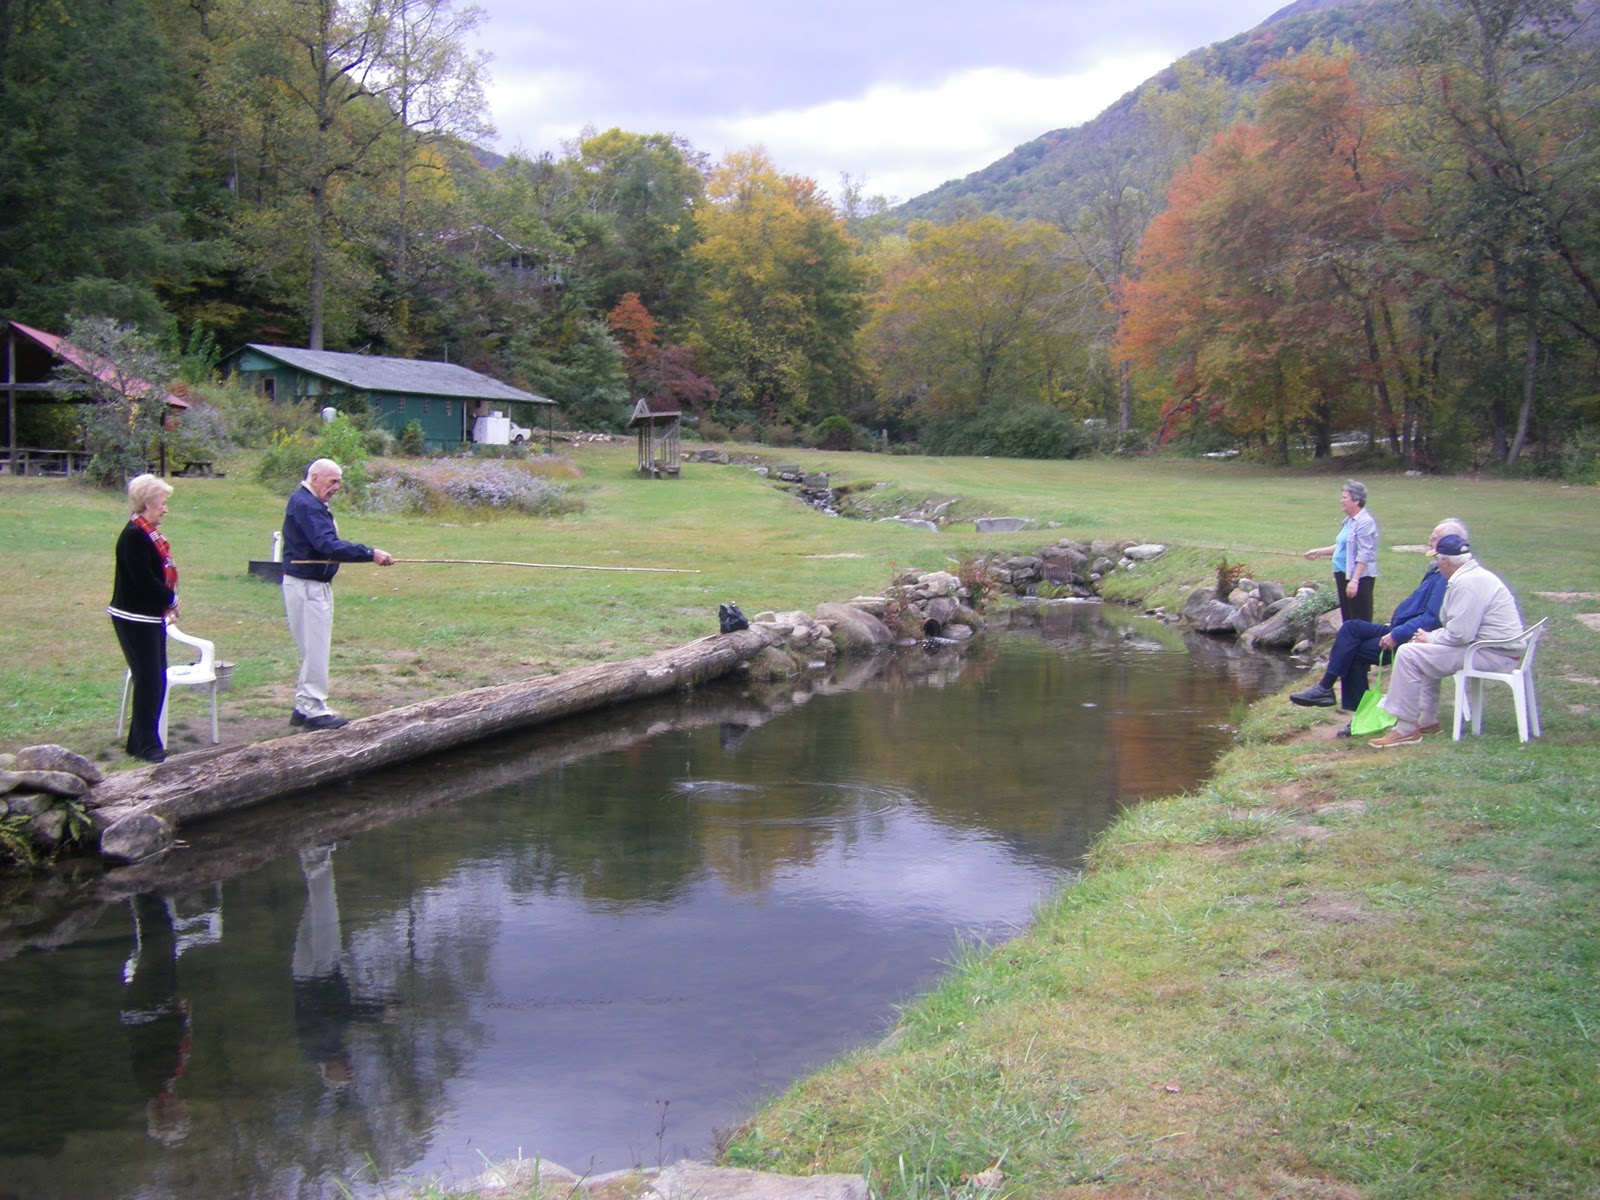 Dancing on the journey more rabun ramblings - Trout farming business family mountains ...